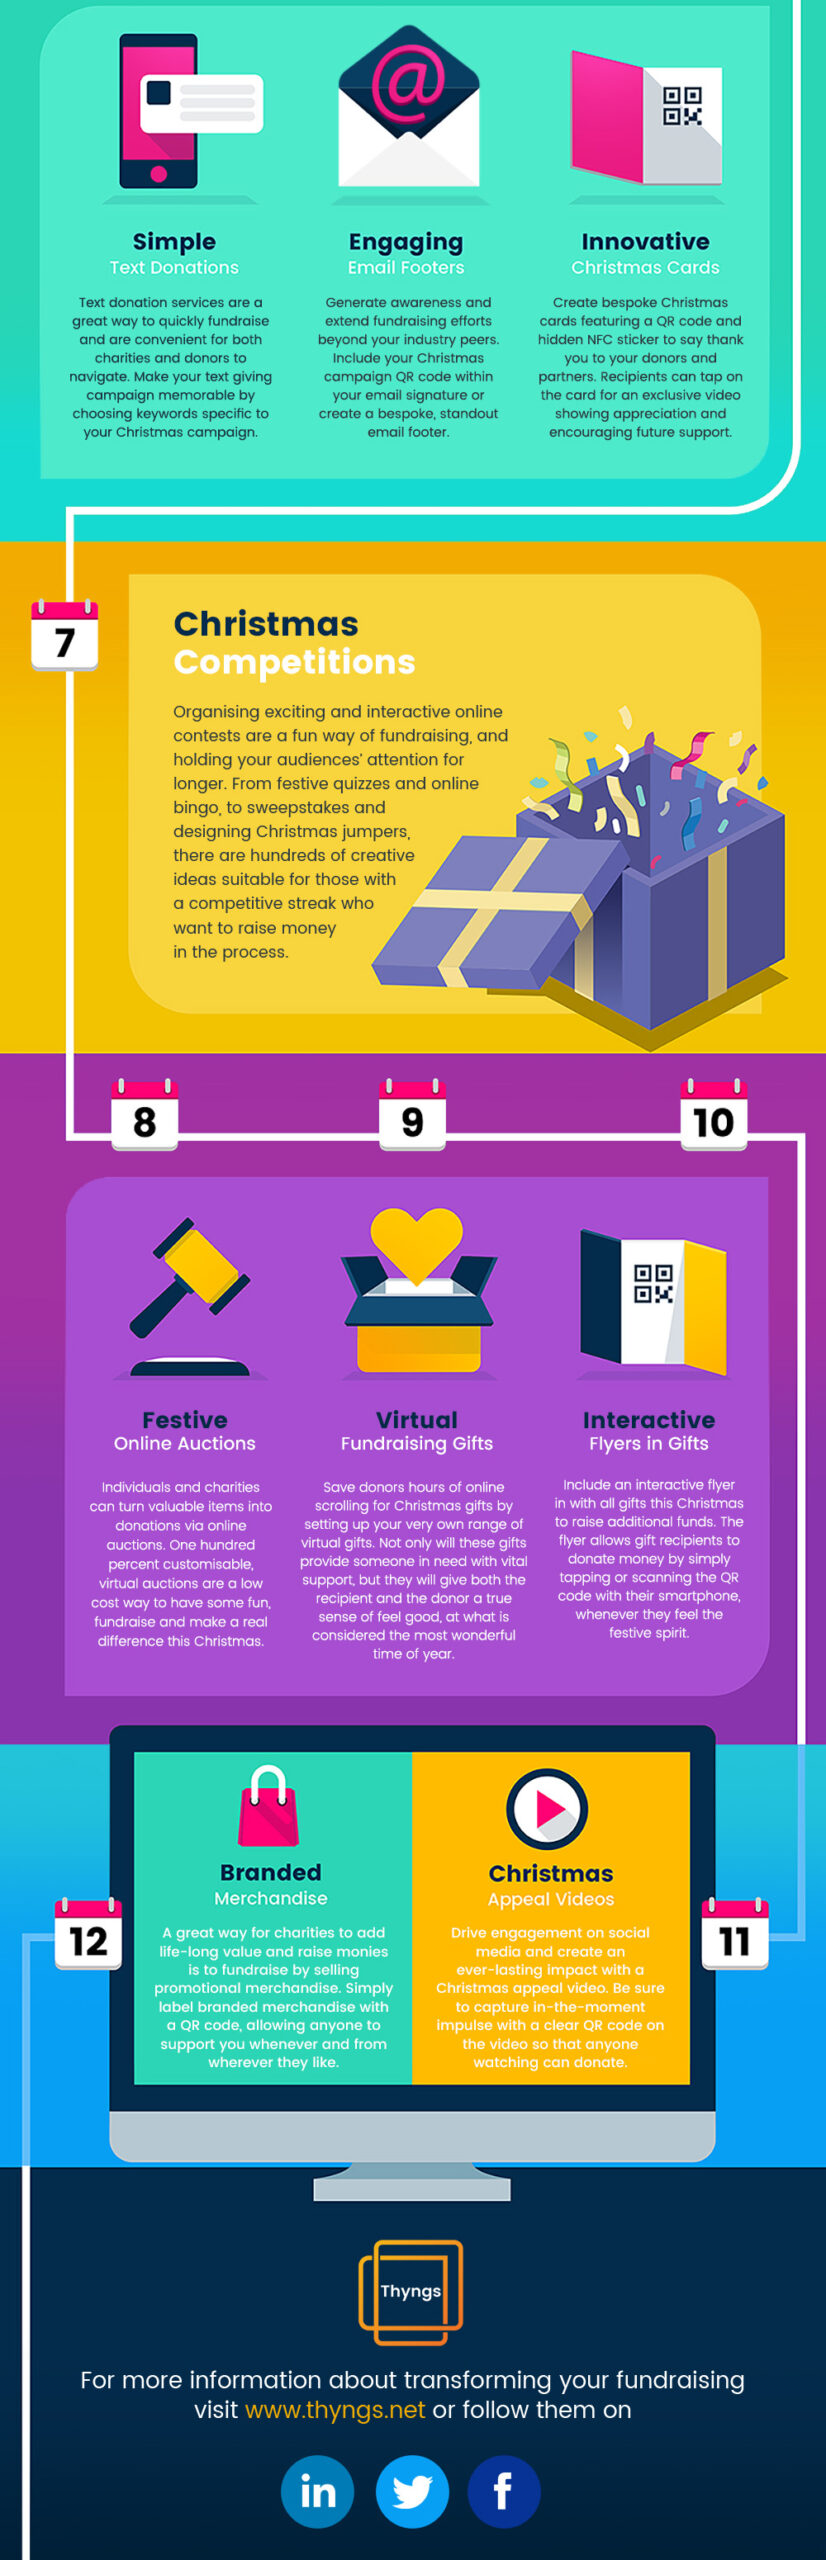 Thyngs infographic showing different ways to give to charity via contactless means